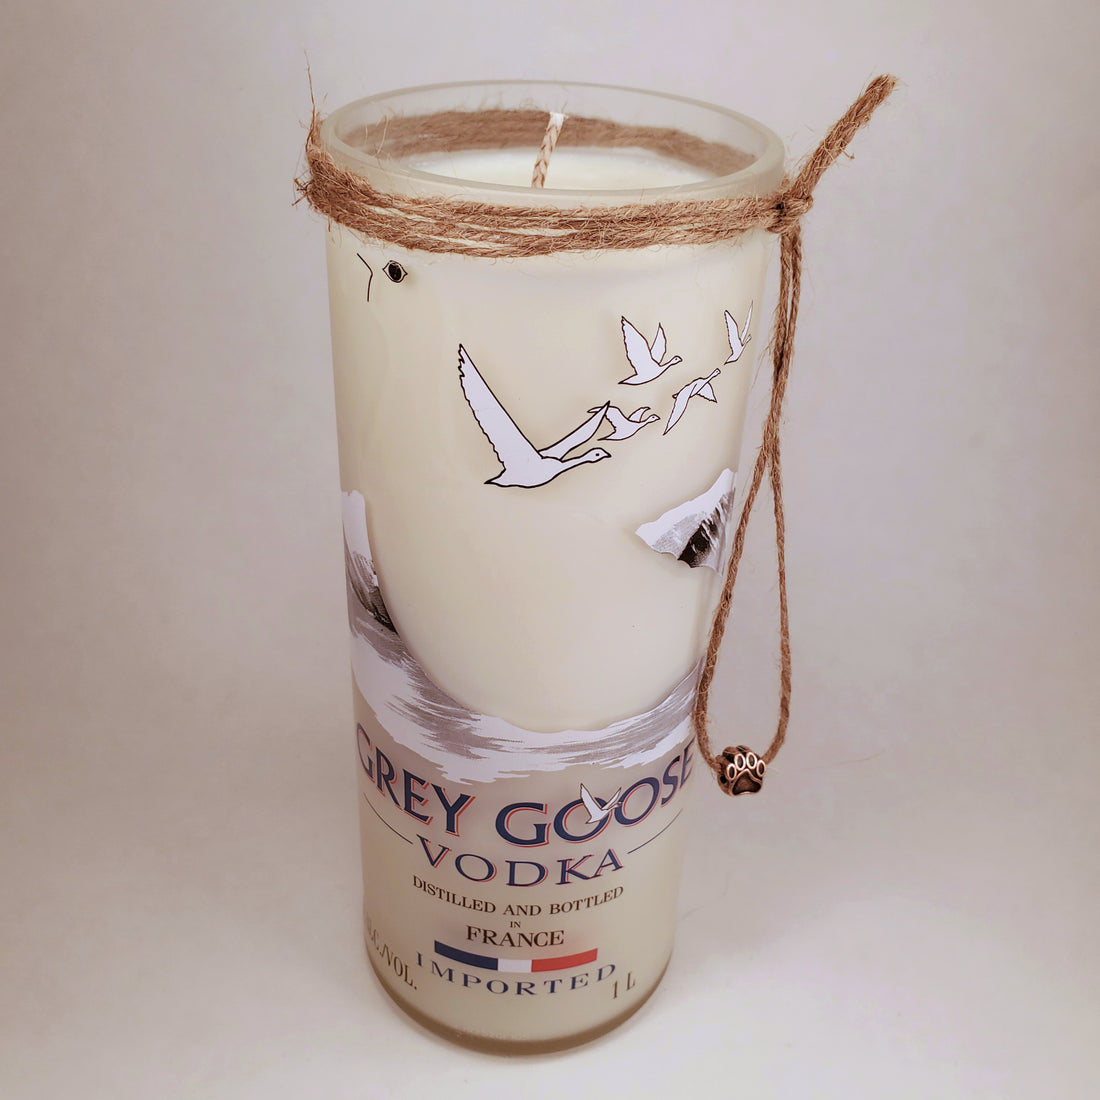 Grey Goose Vodka 1L Hand Cut Upcycled Liquor Bottle Candle - Scent - Citron and Mandarin